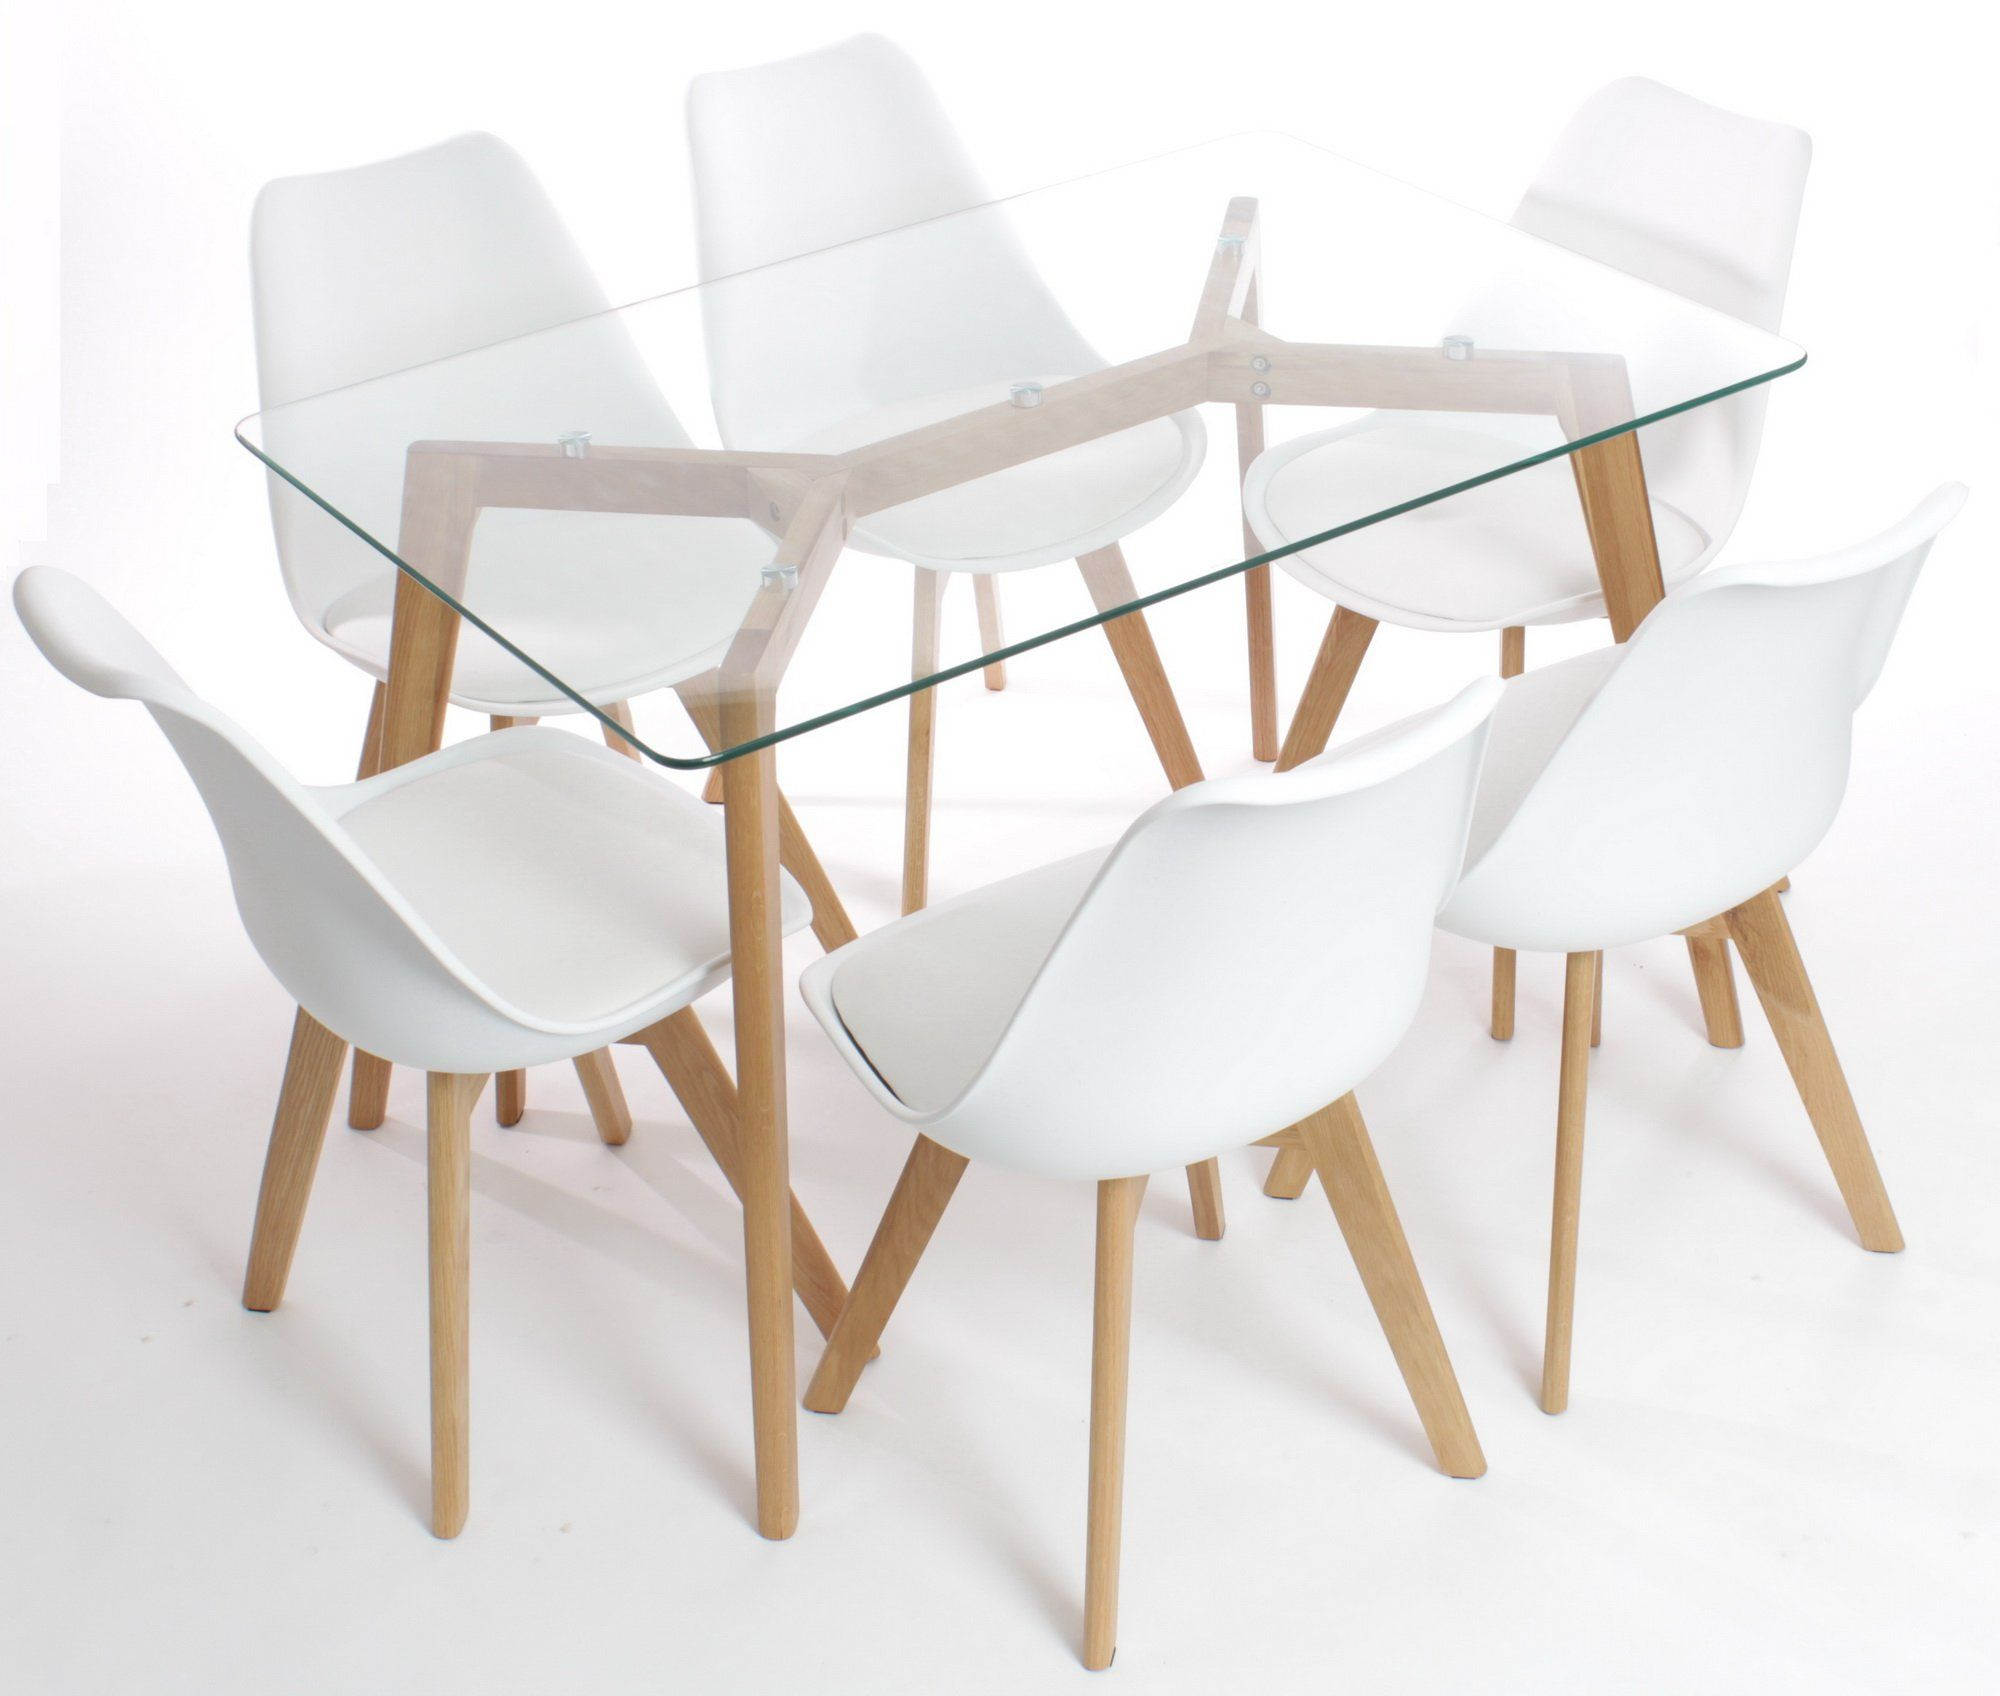 glass dining table with oak legs. oak legs and clear glass. charles jacobs dining table with six white chairs set solid wood glass e